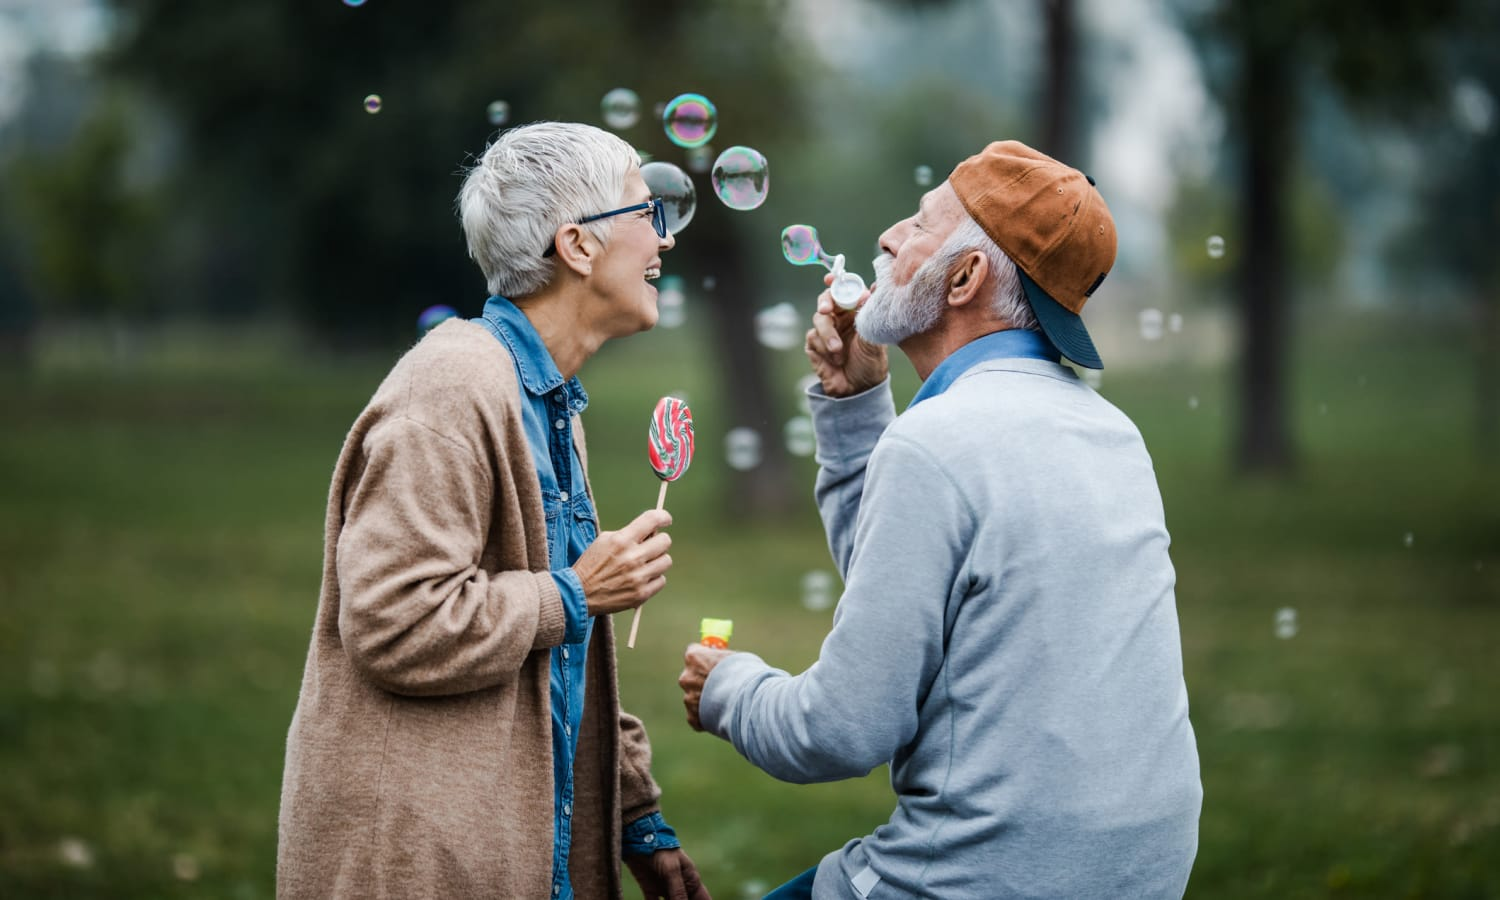 Residents blowing bubbles at Arbors Memory Care in Sparks, Nevada